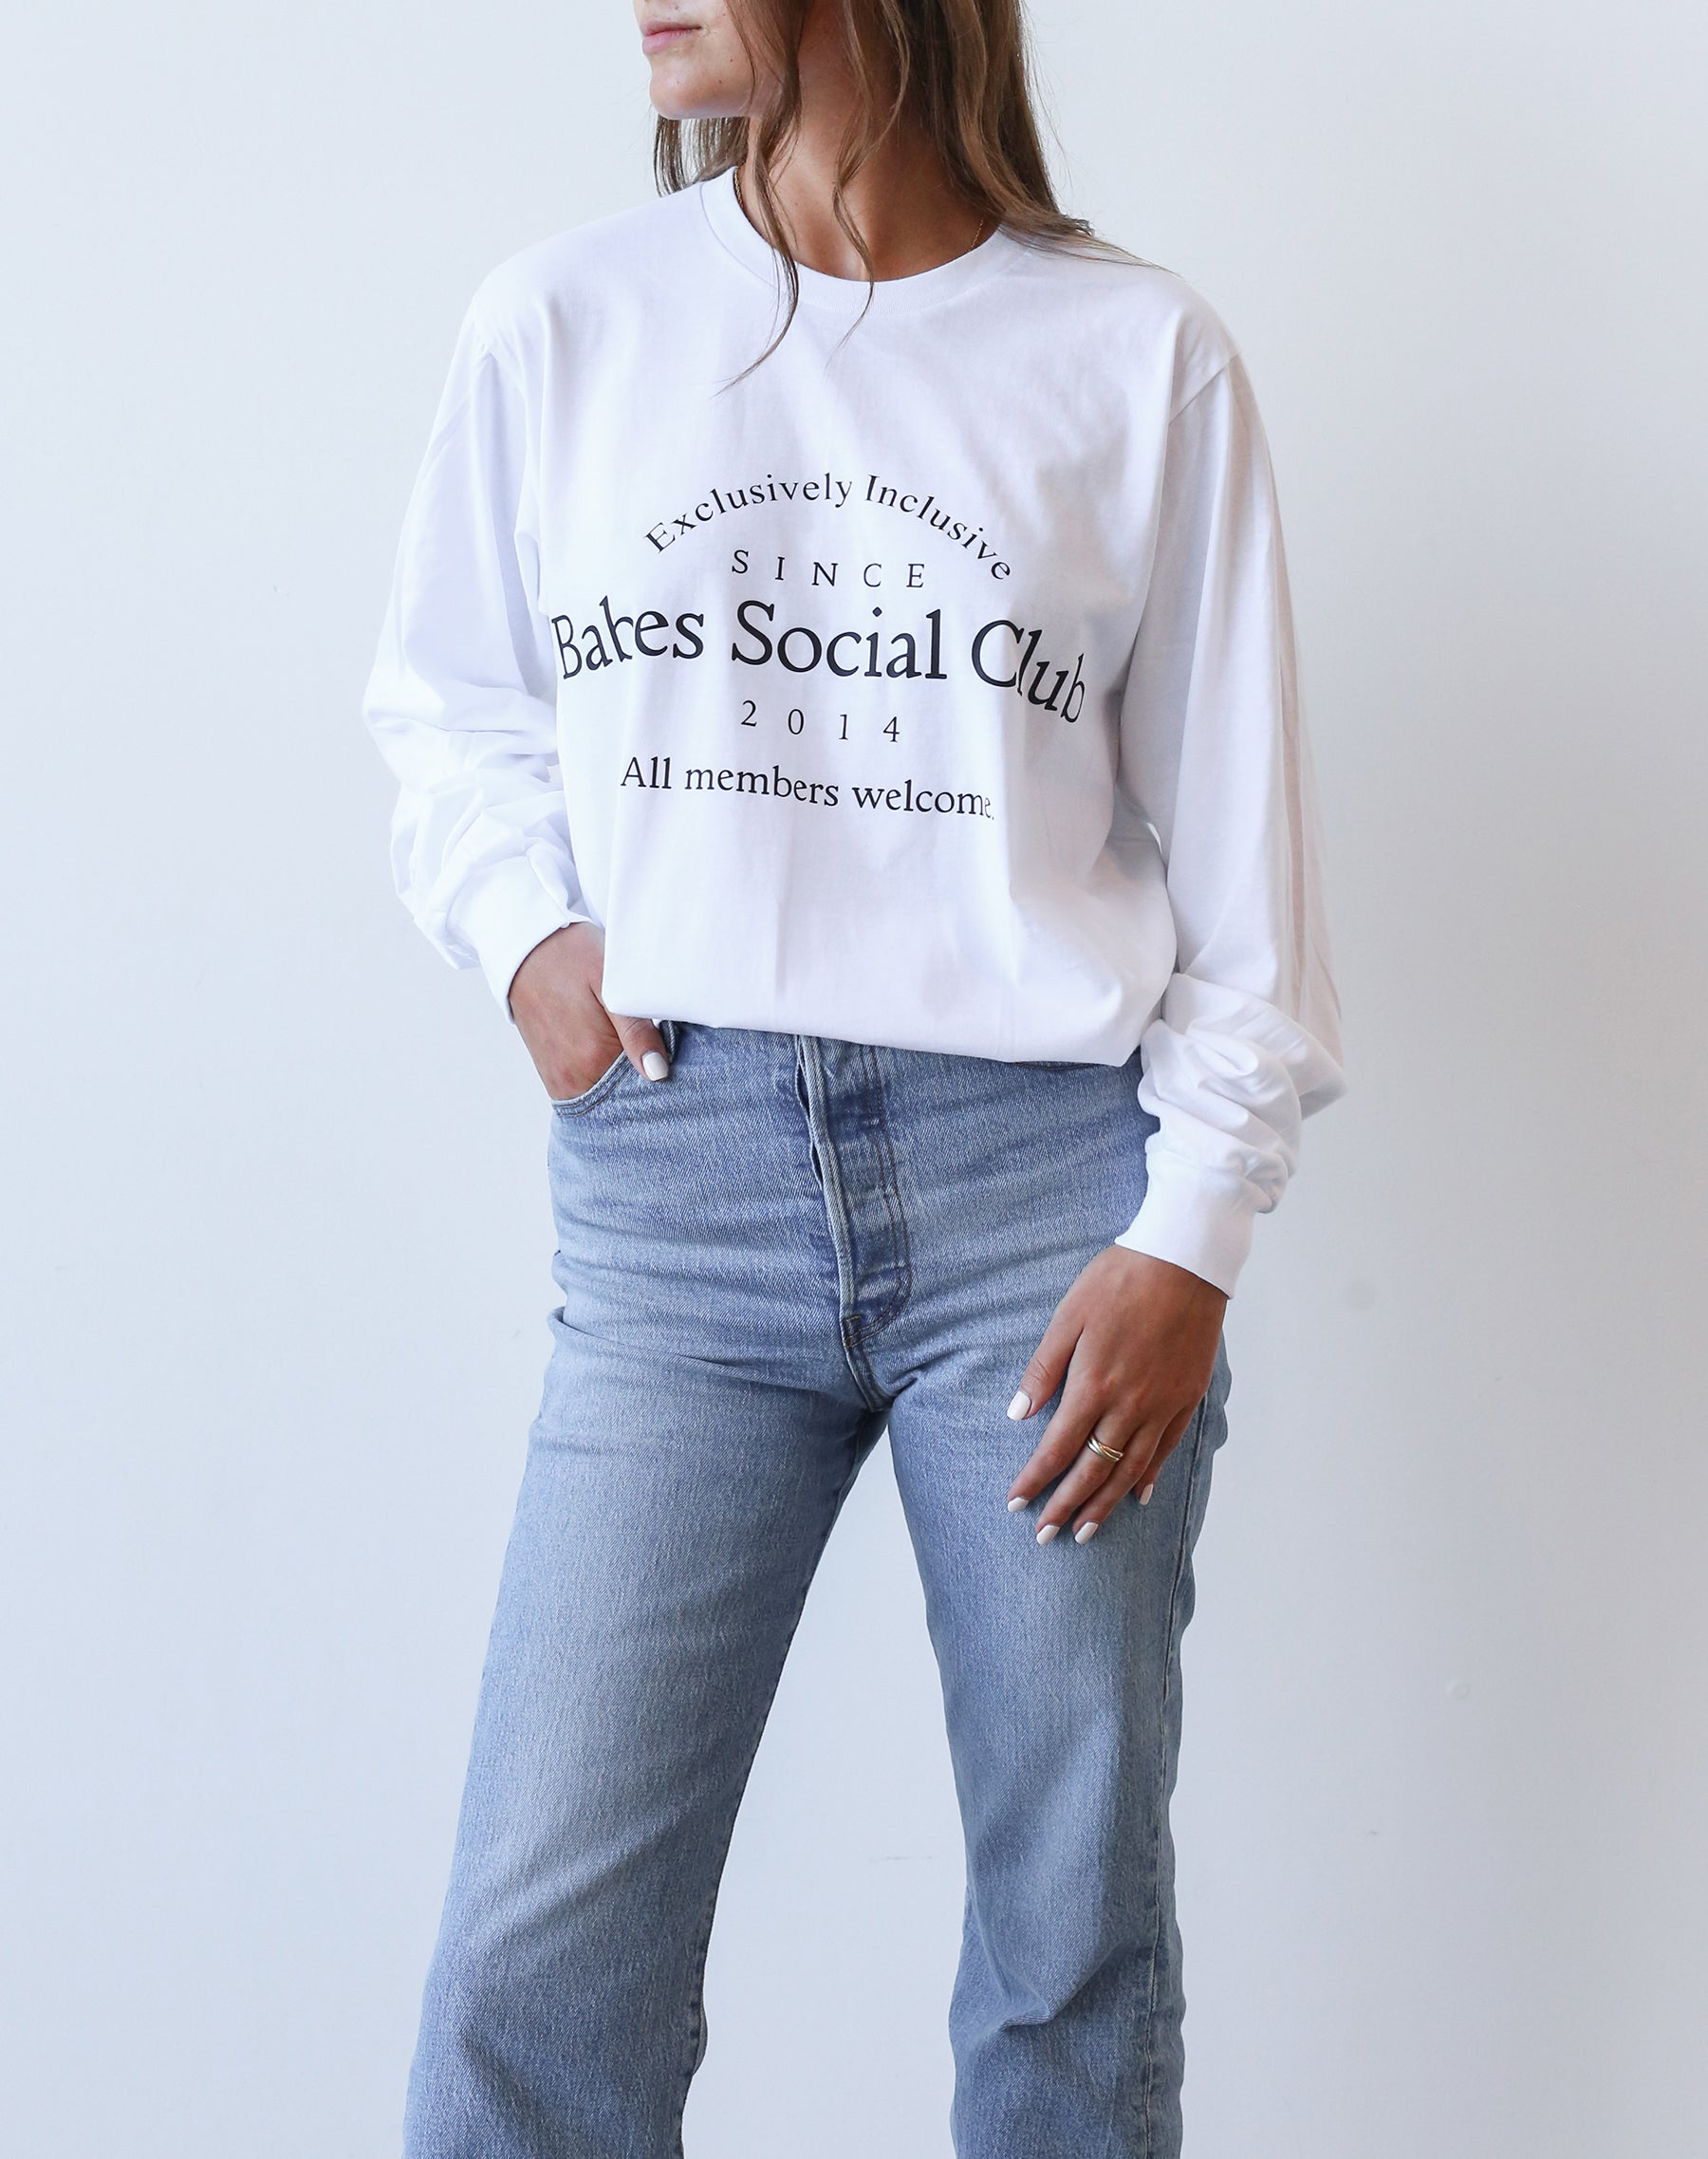 This is an Ecommerce photo of the Babes Social Club Long Sleeve Tee in white and black by Brunette the Label.